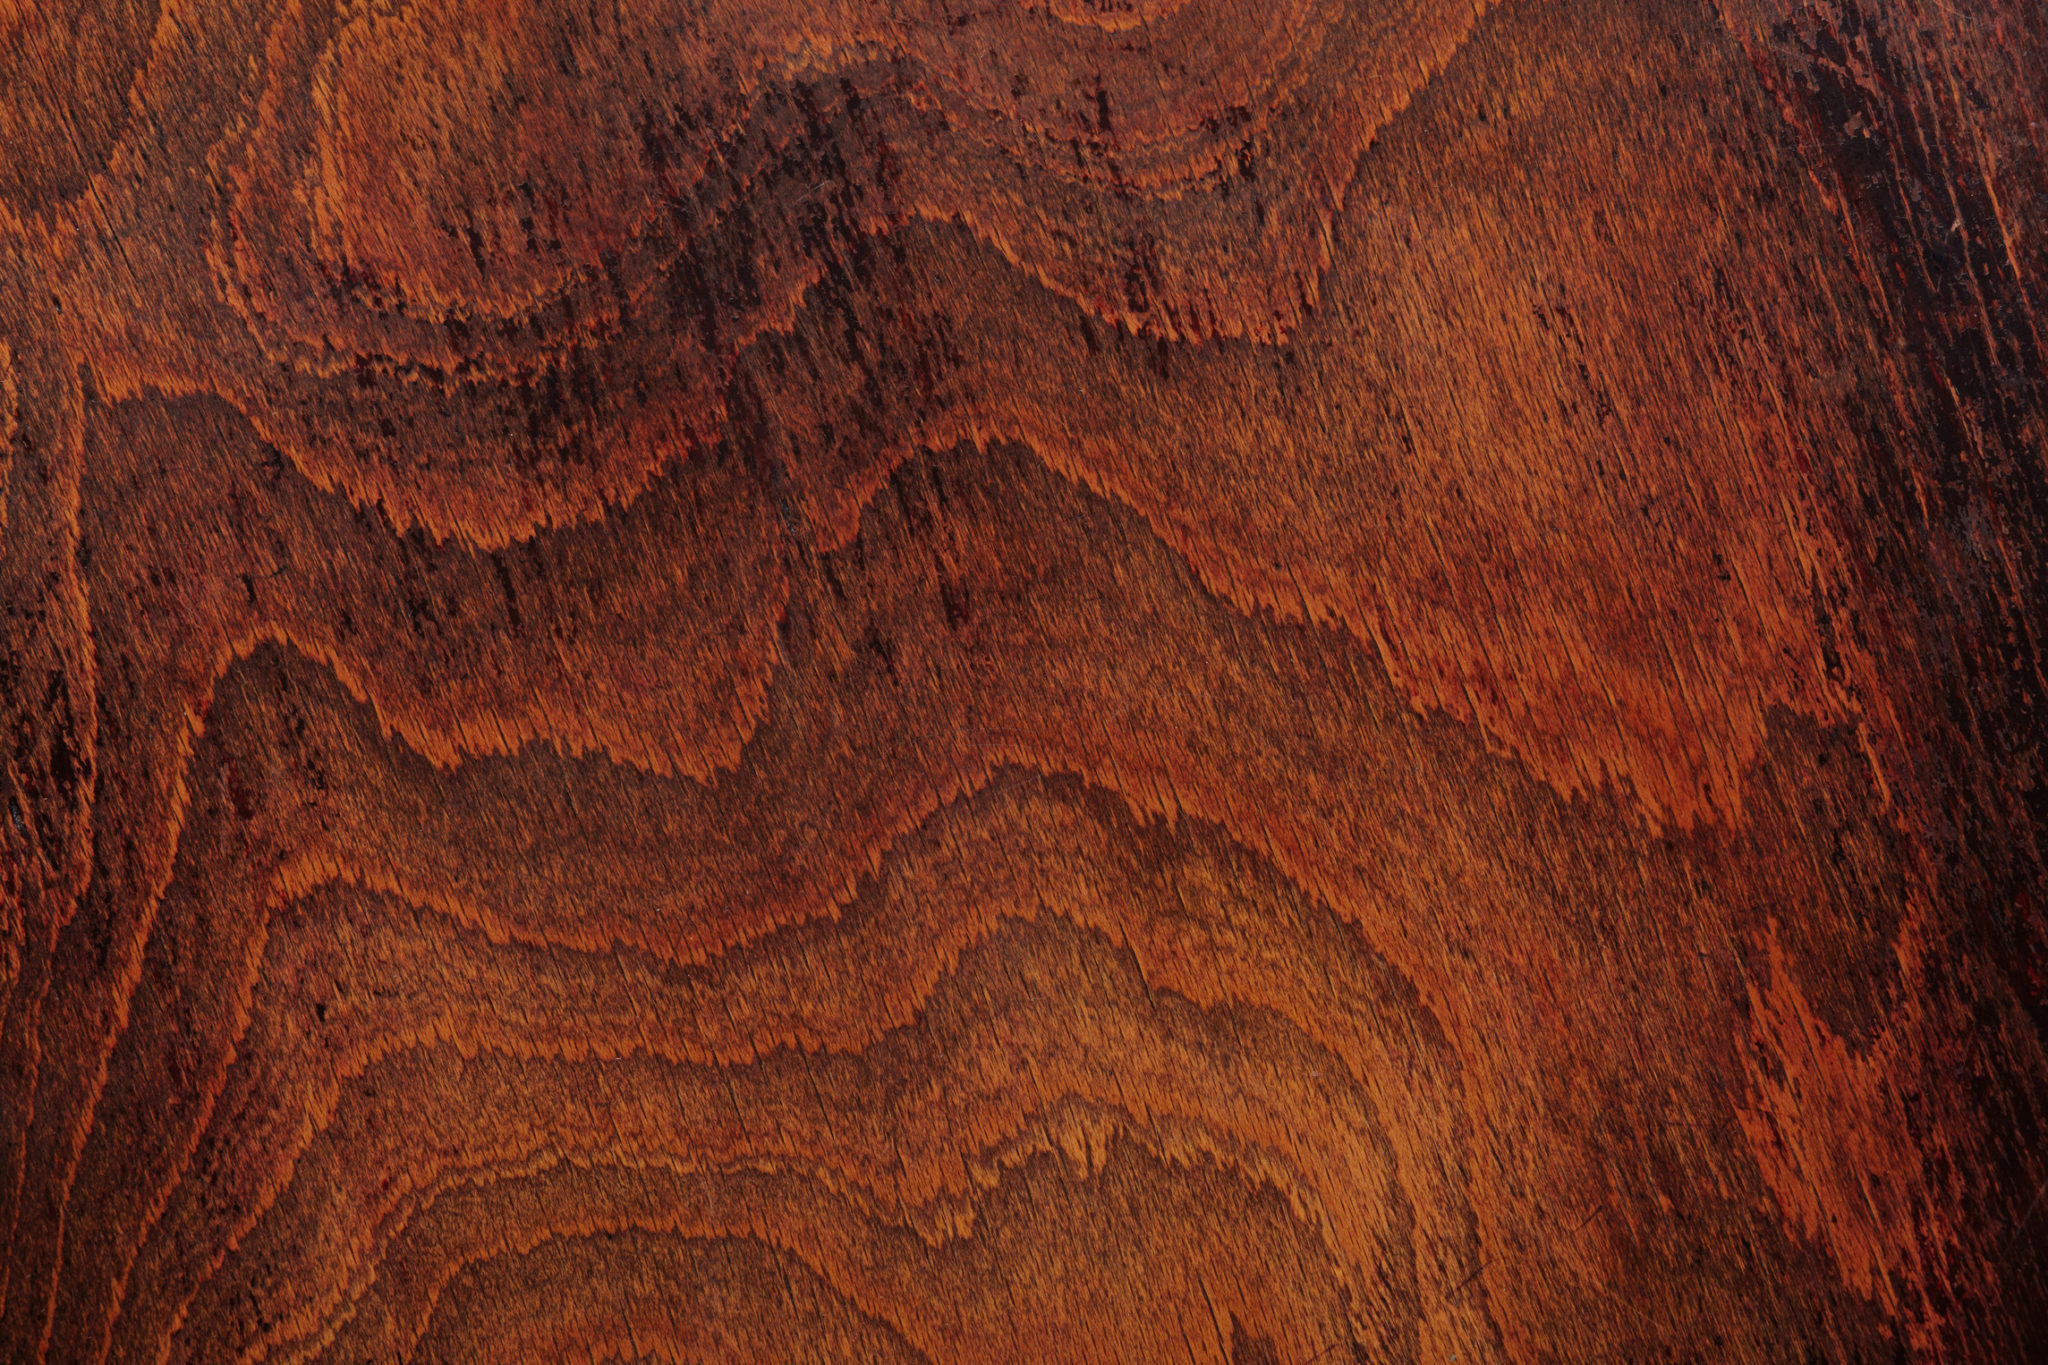 Best Textured Paint For Wood